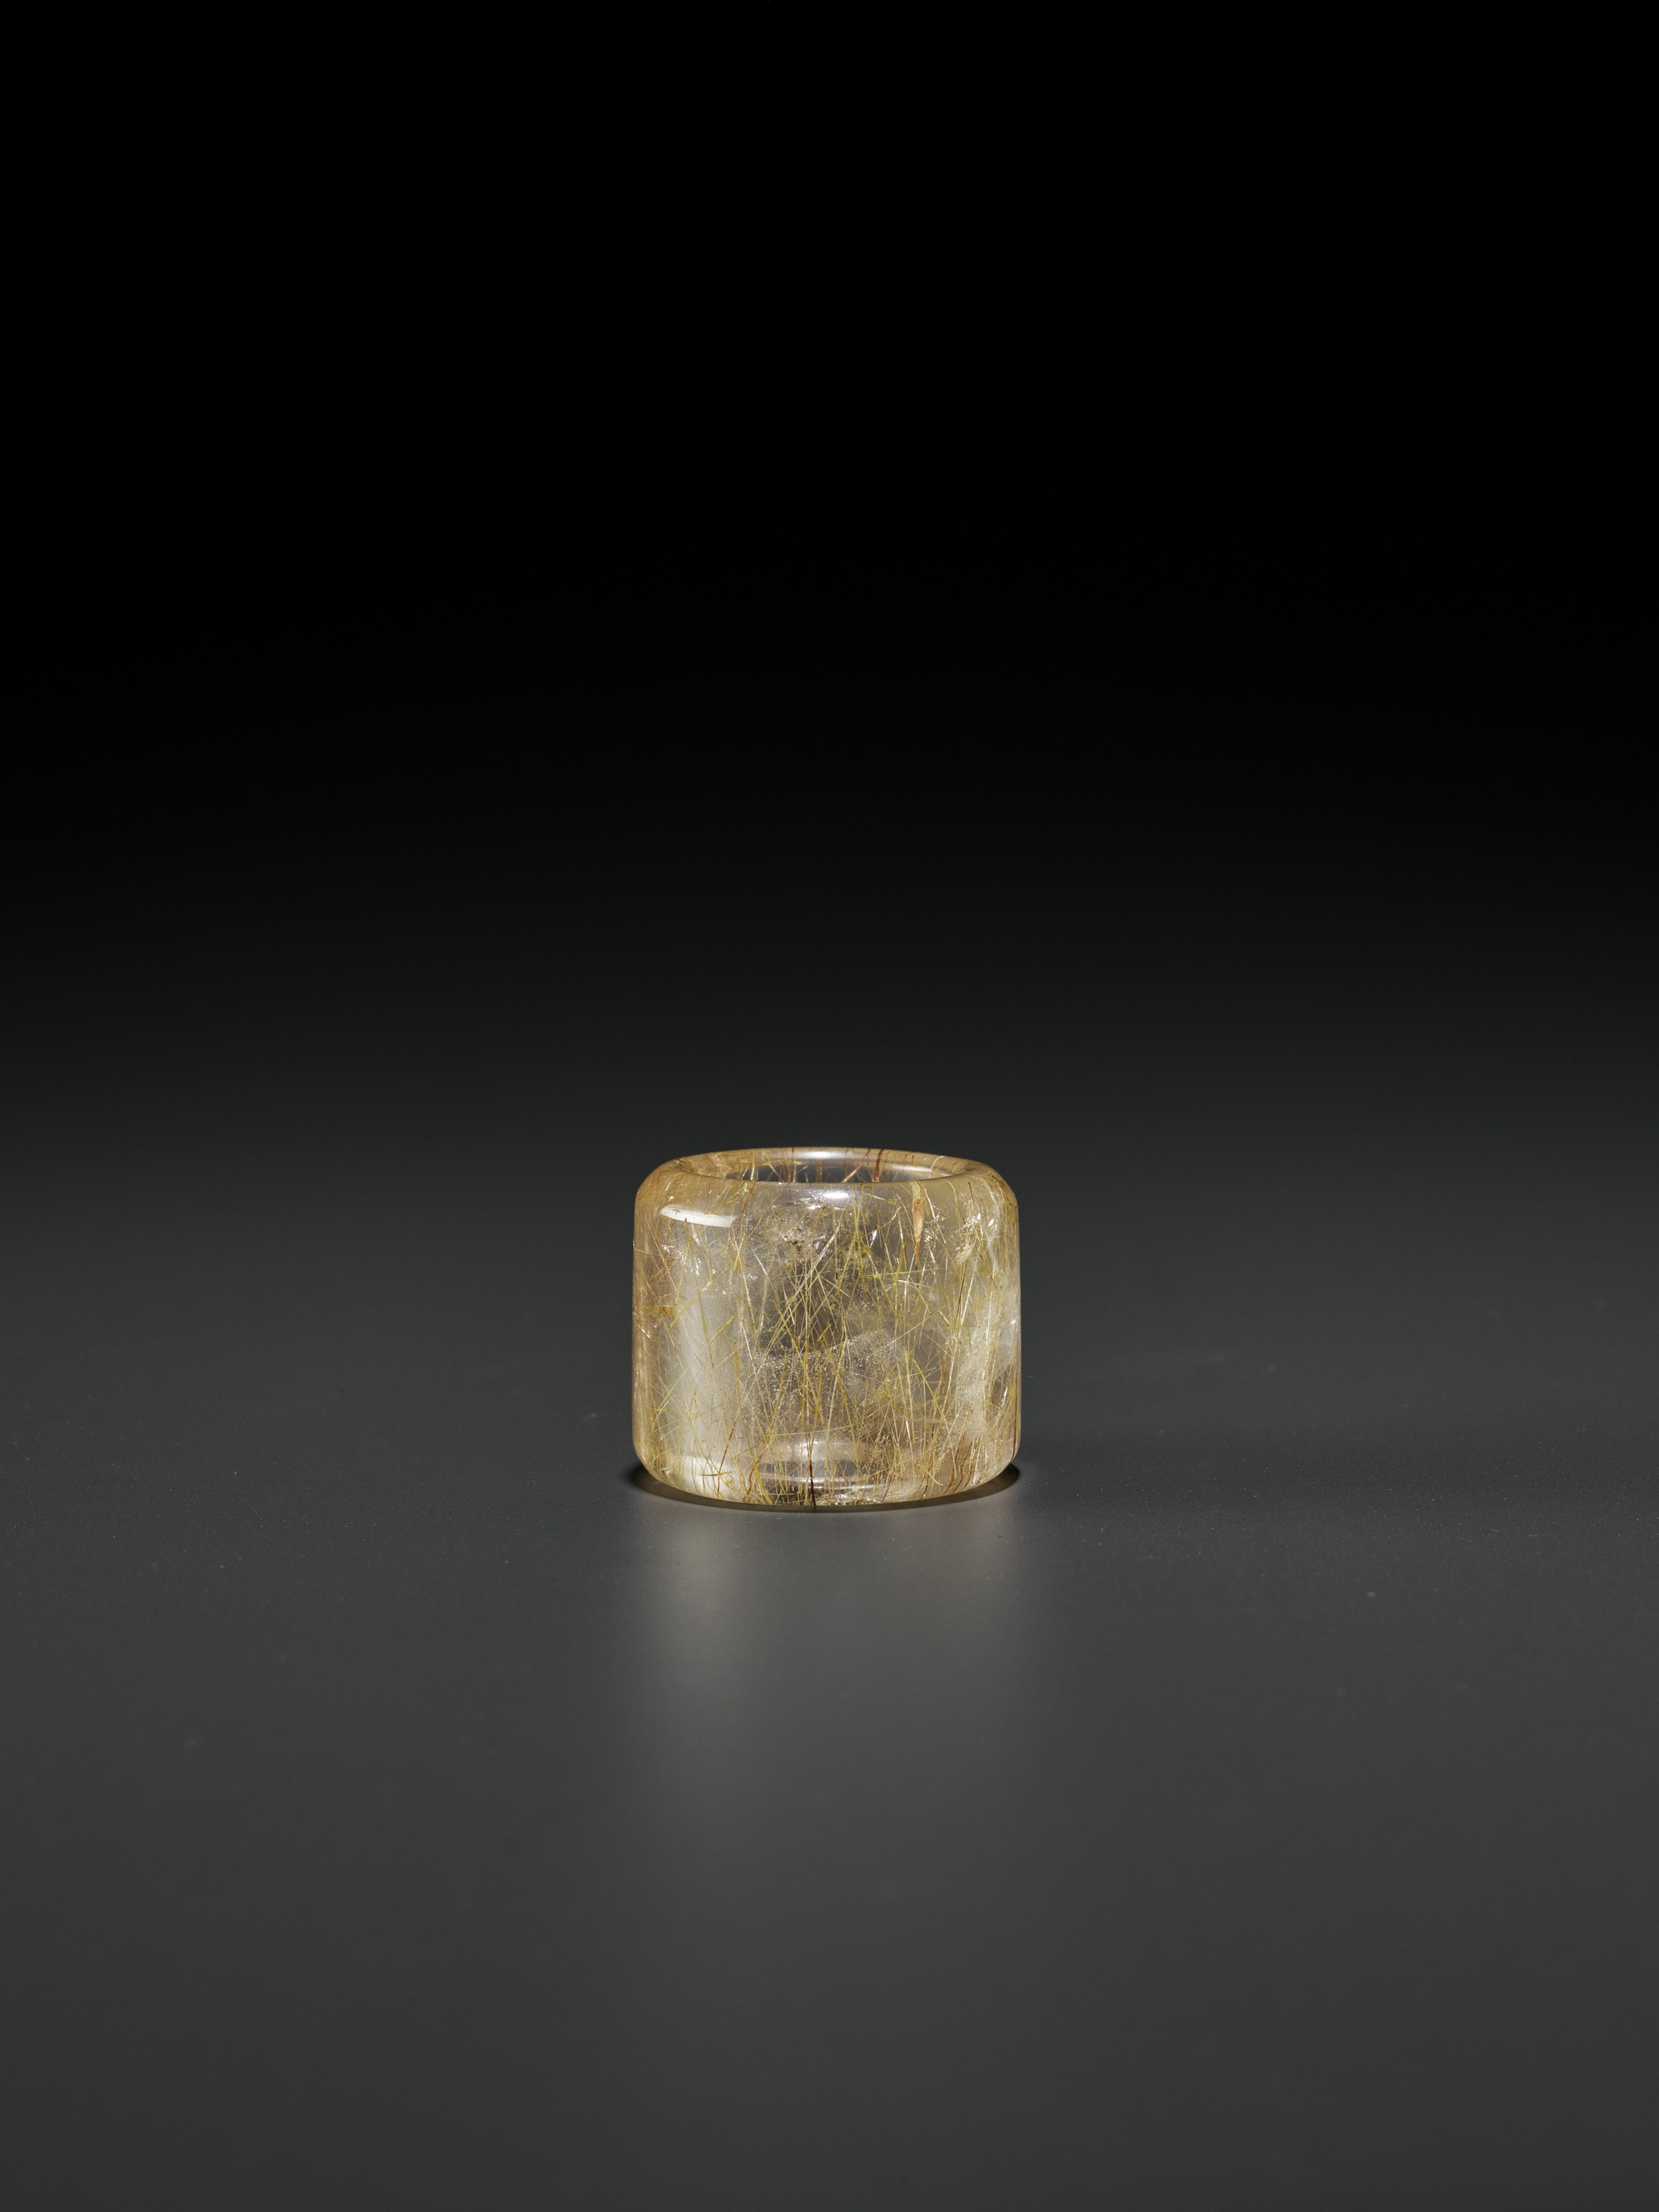 A 'HAIR' CRYSTAL ARCHER'S RING, QING DYNASTY - Image 6 of 9